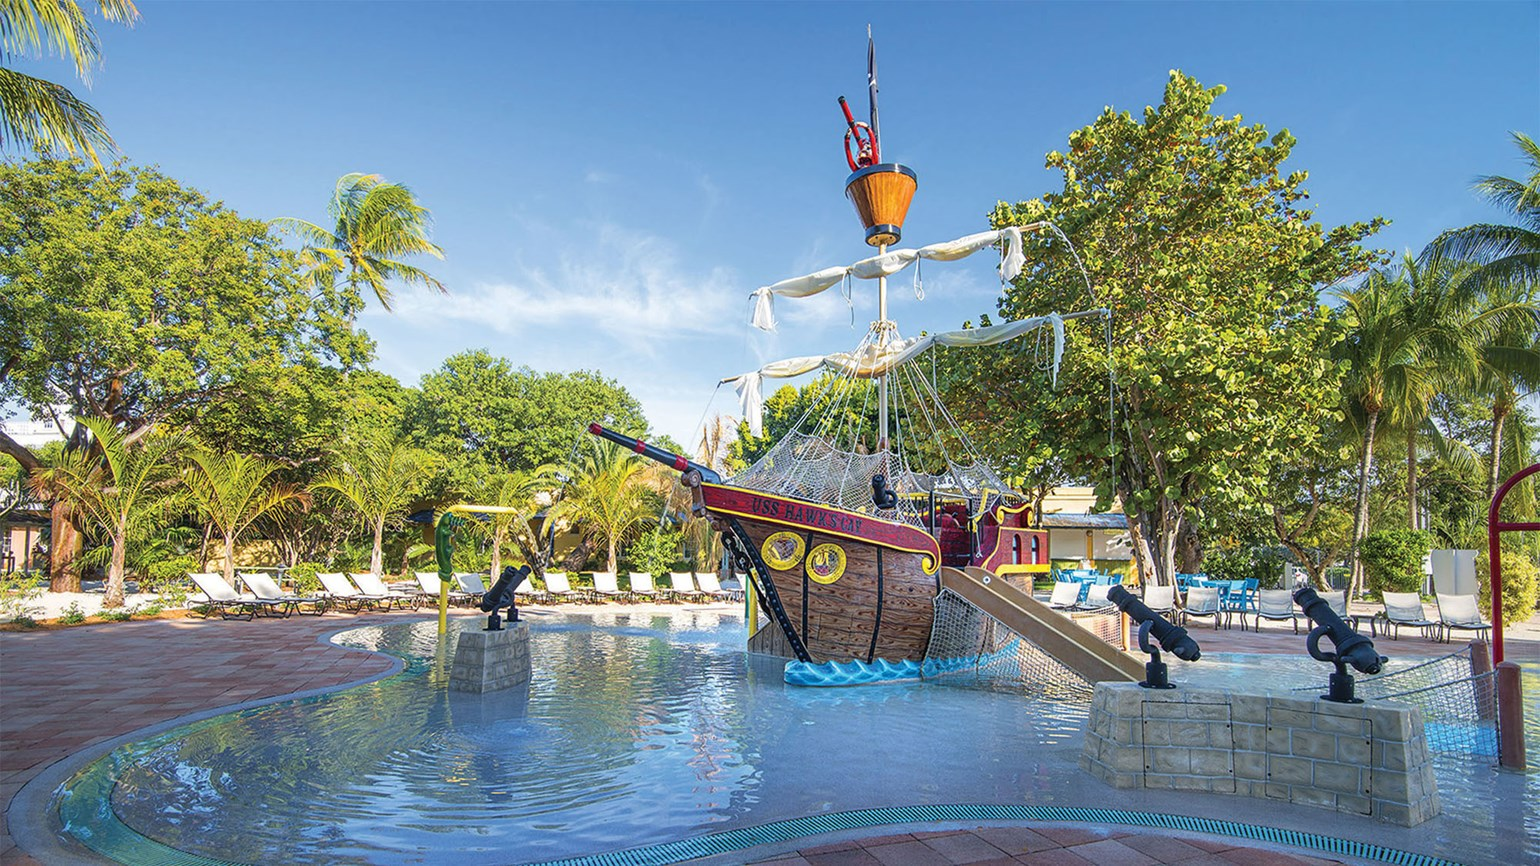 The pirate ship pool at the Hawks Cay resort's Coral Cay Activities & Adventures kids area.